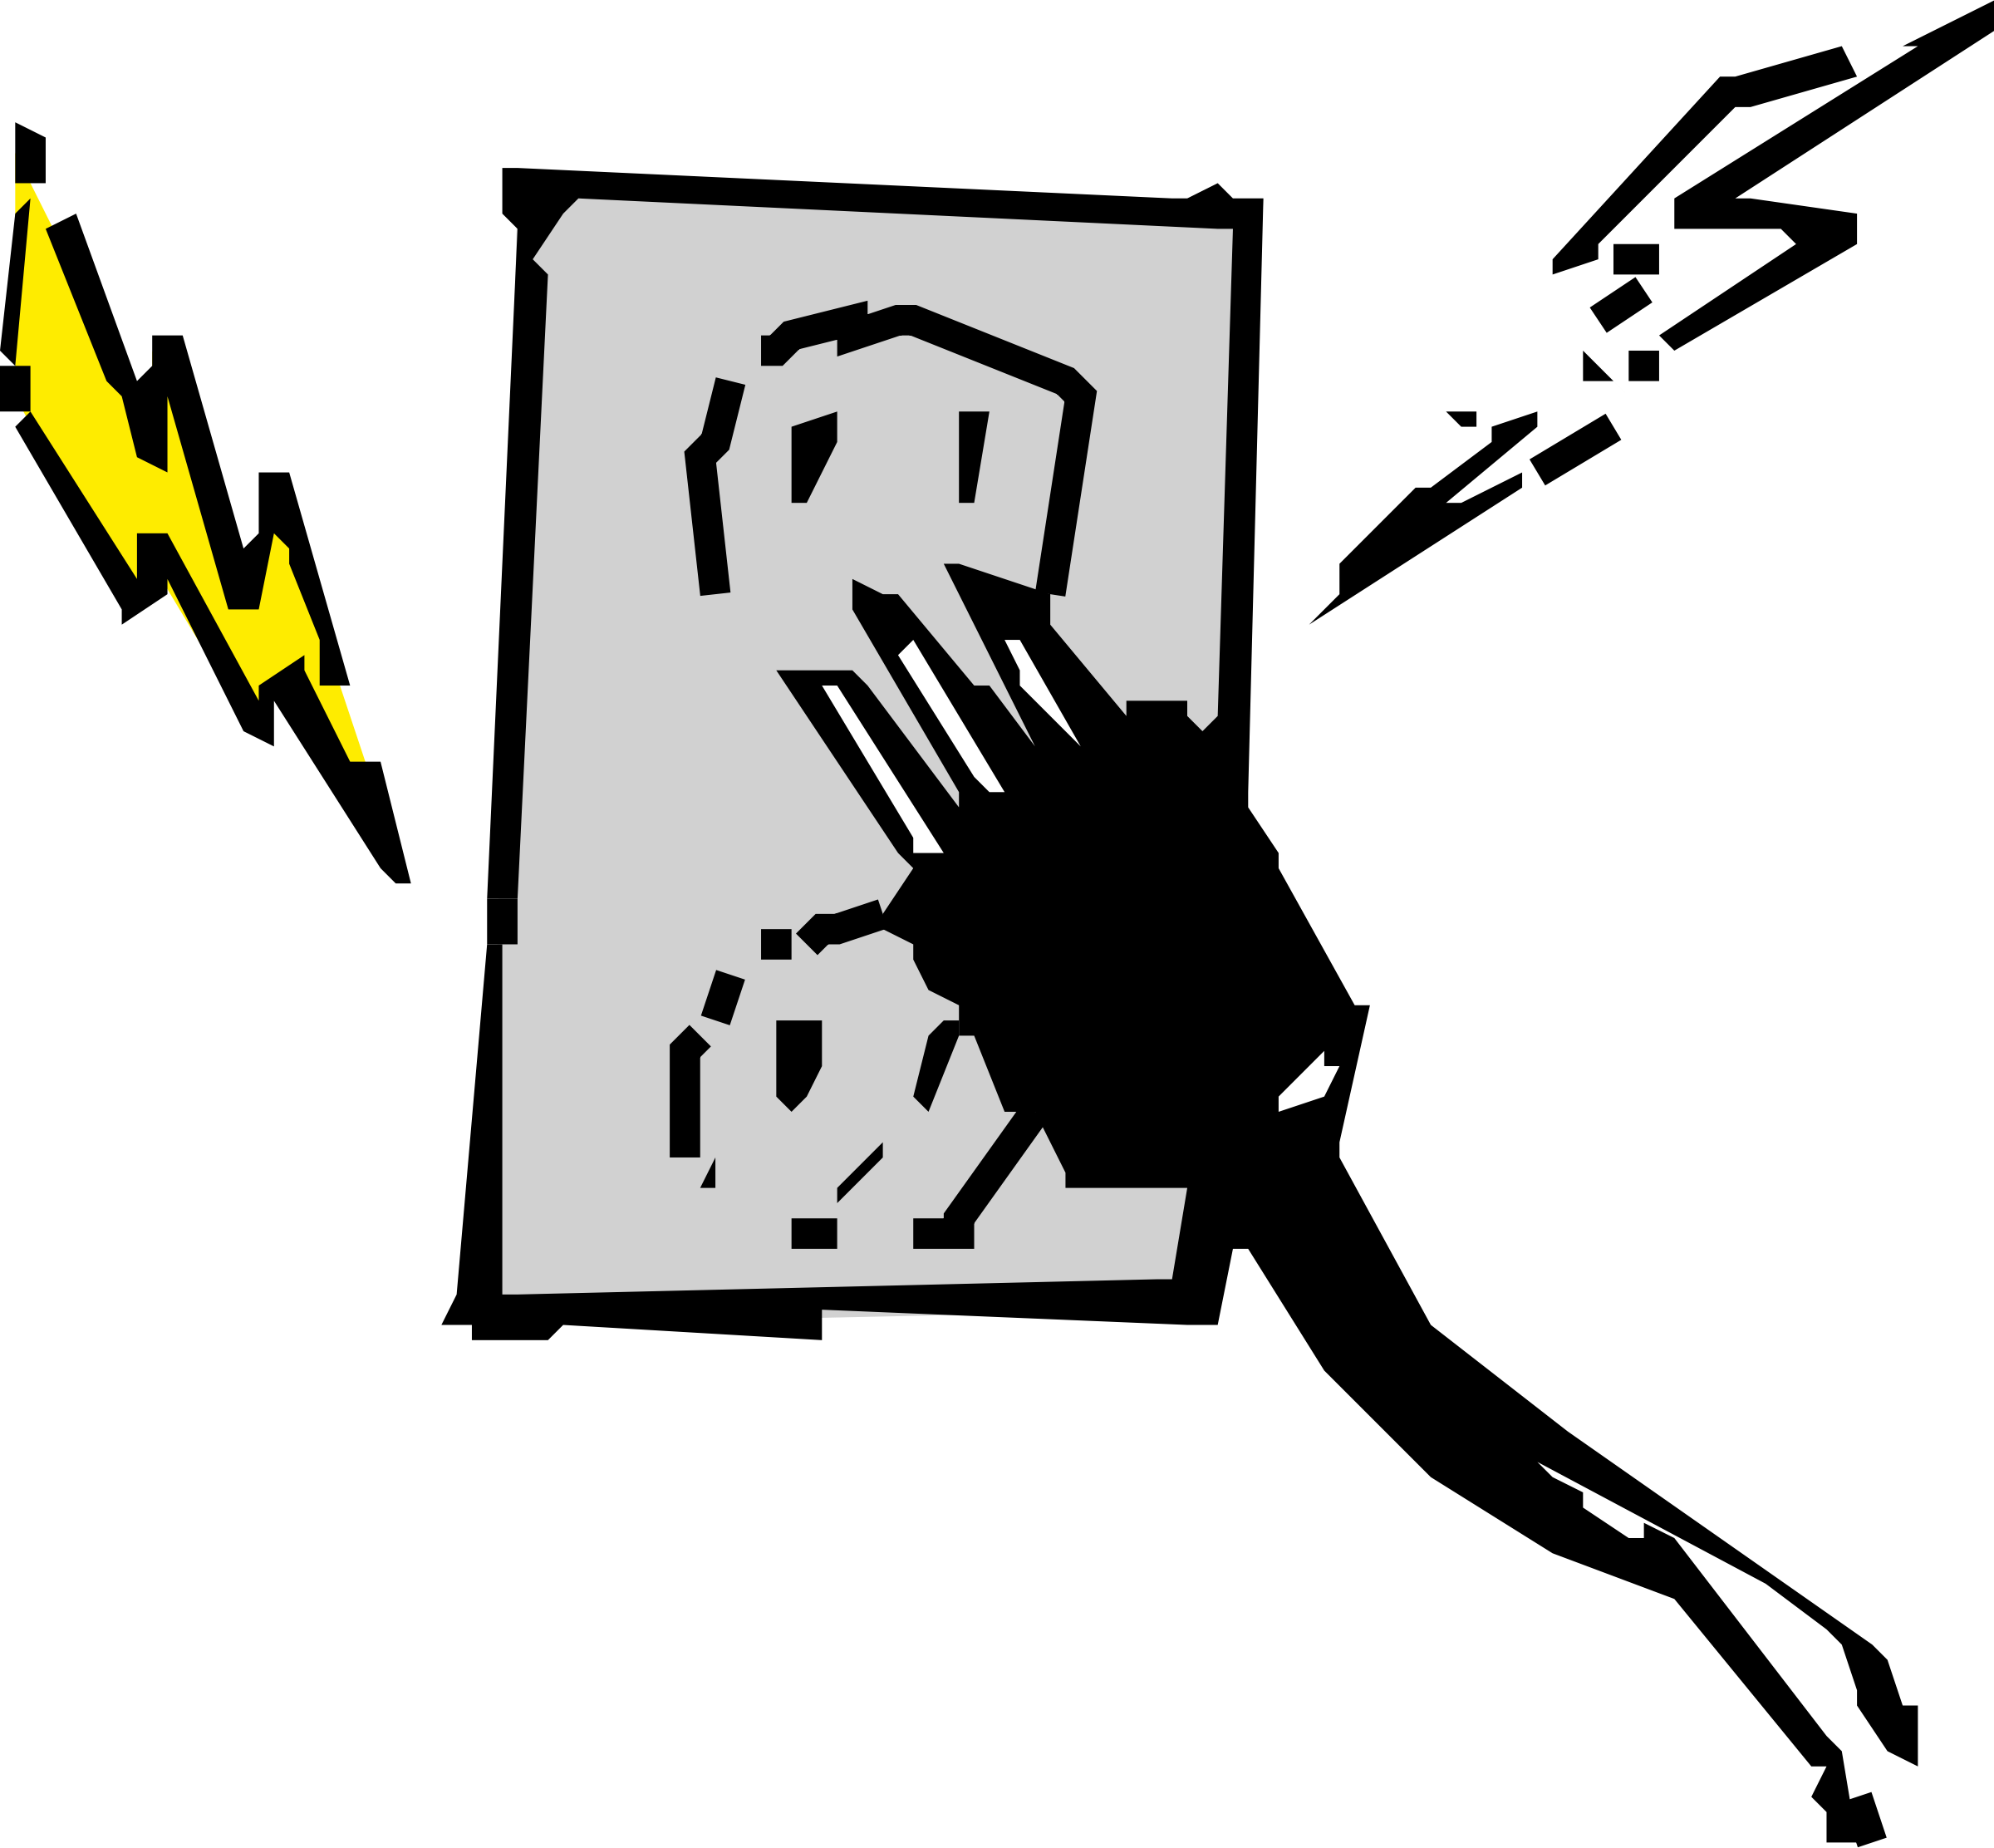 Electrical outlet and plug. Electric clipart electricity picture free download